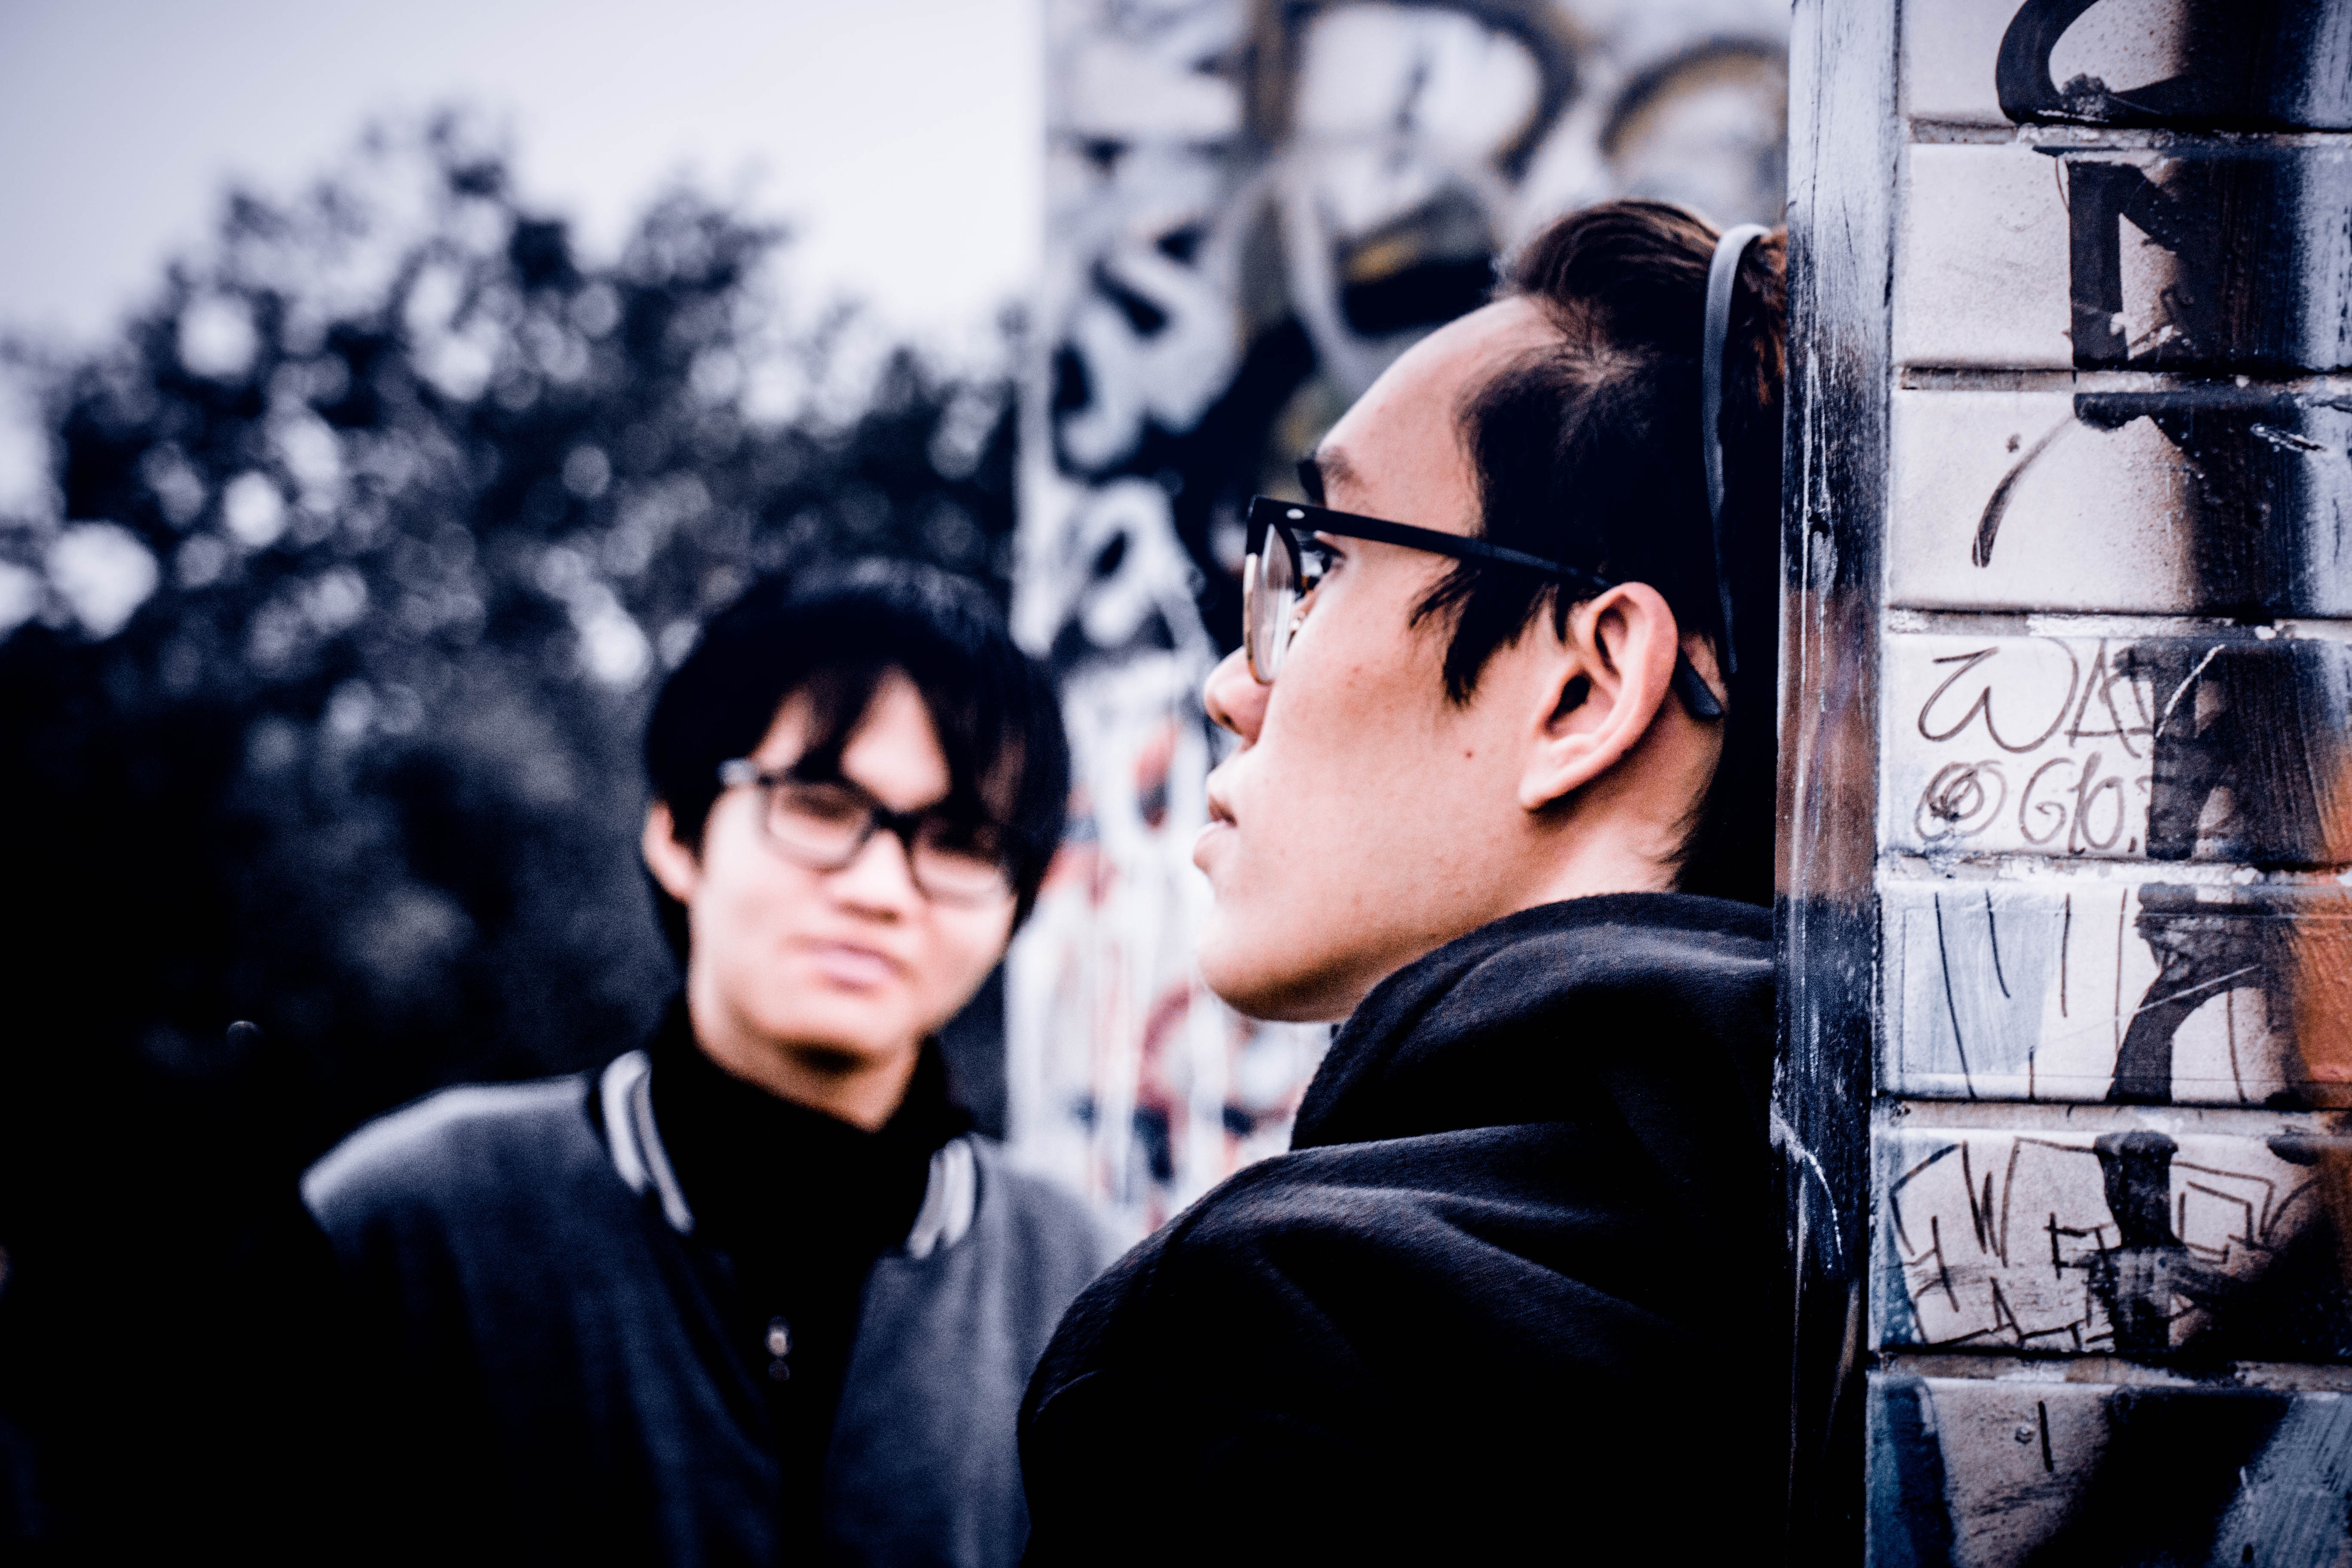 Two people in glasses stand, facing one another, against a graffitied brick wall